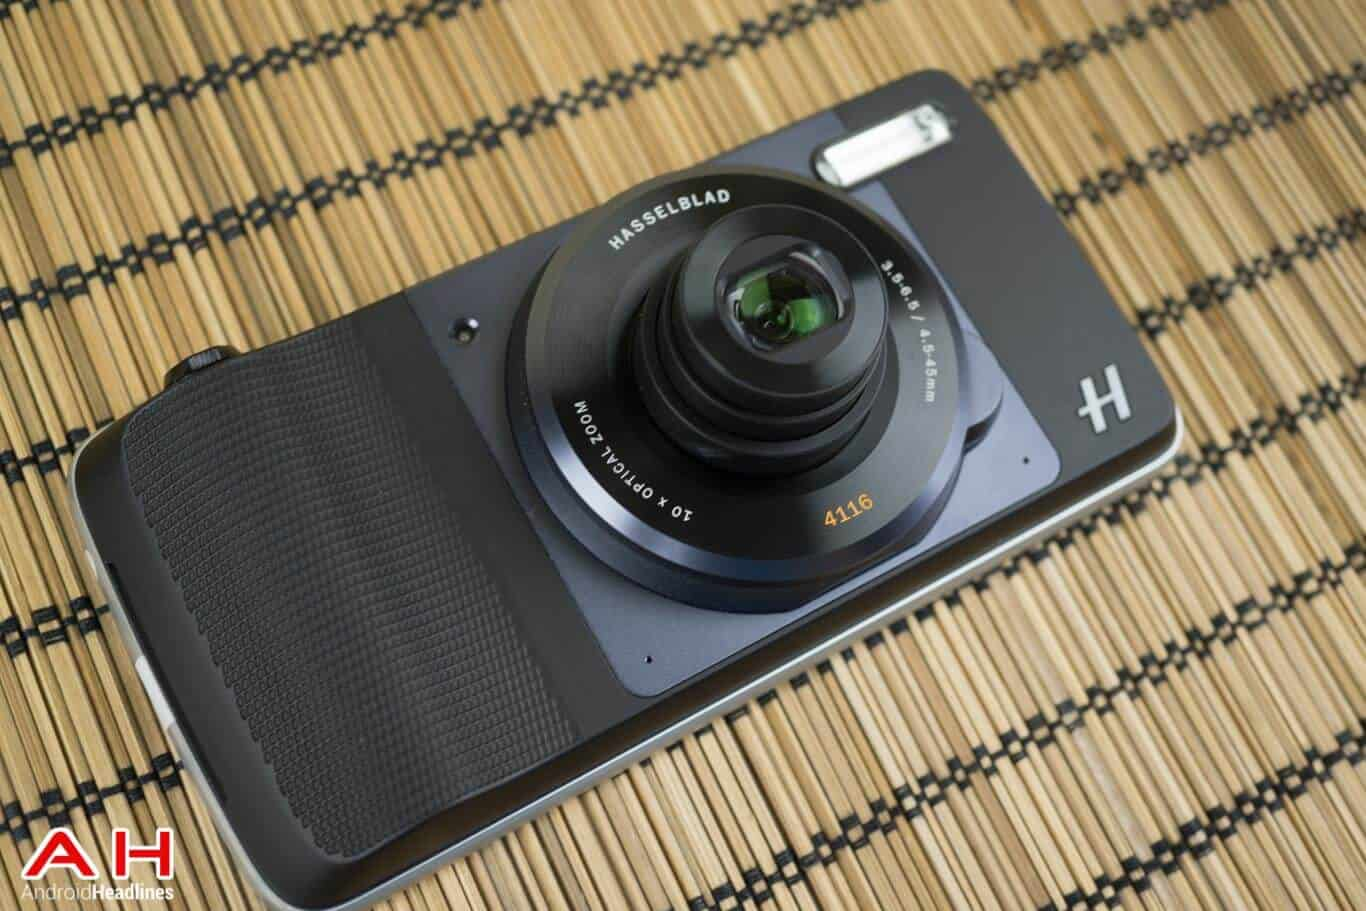 Hasselblad-Camera-Moto-Mod-Review-AM-AH-5